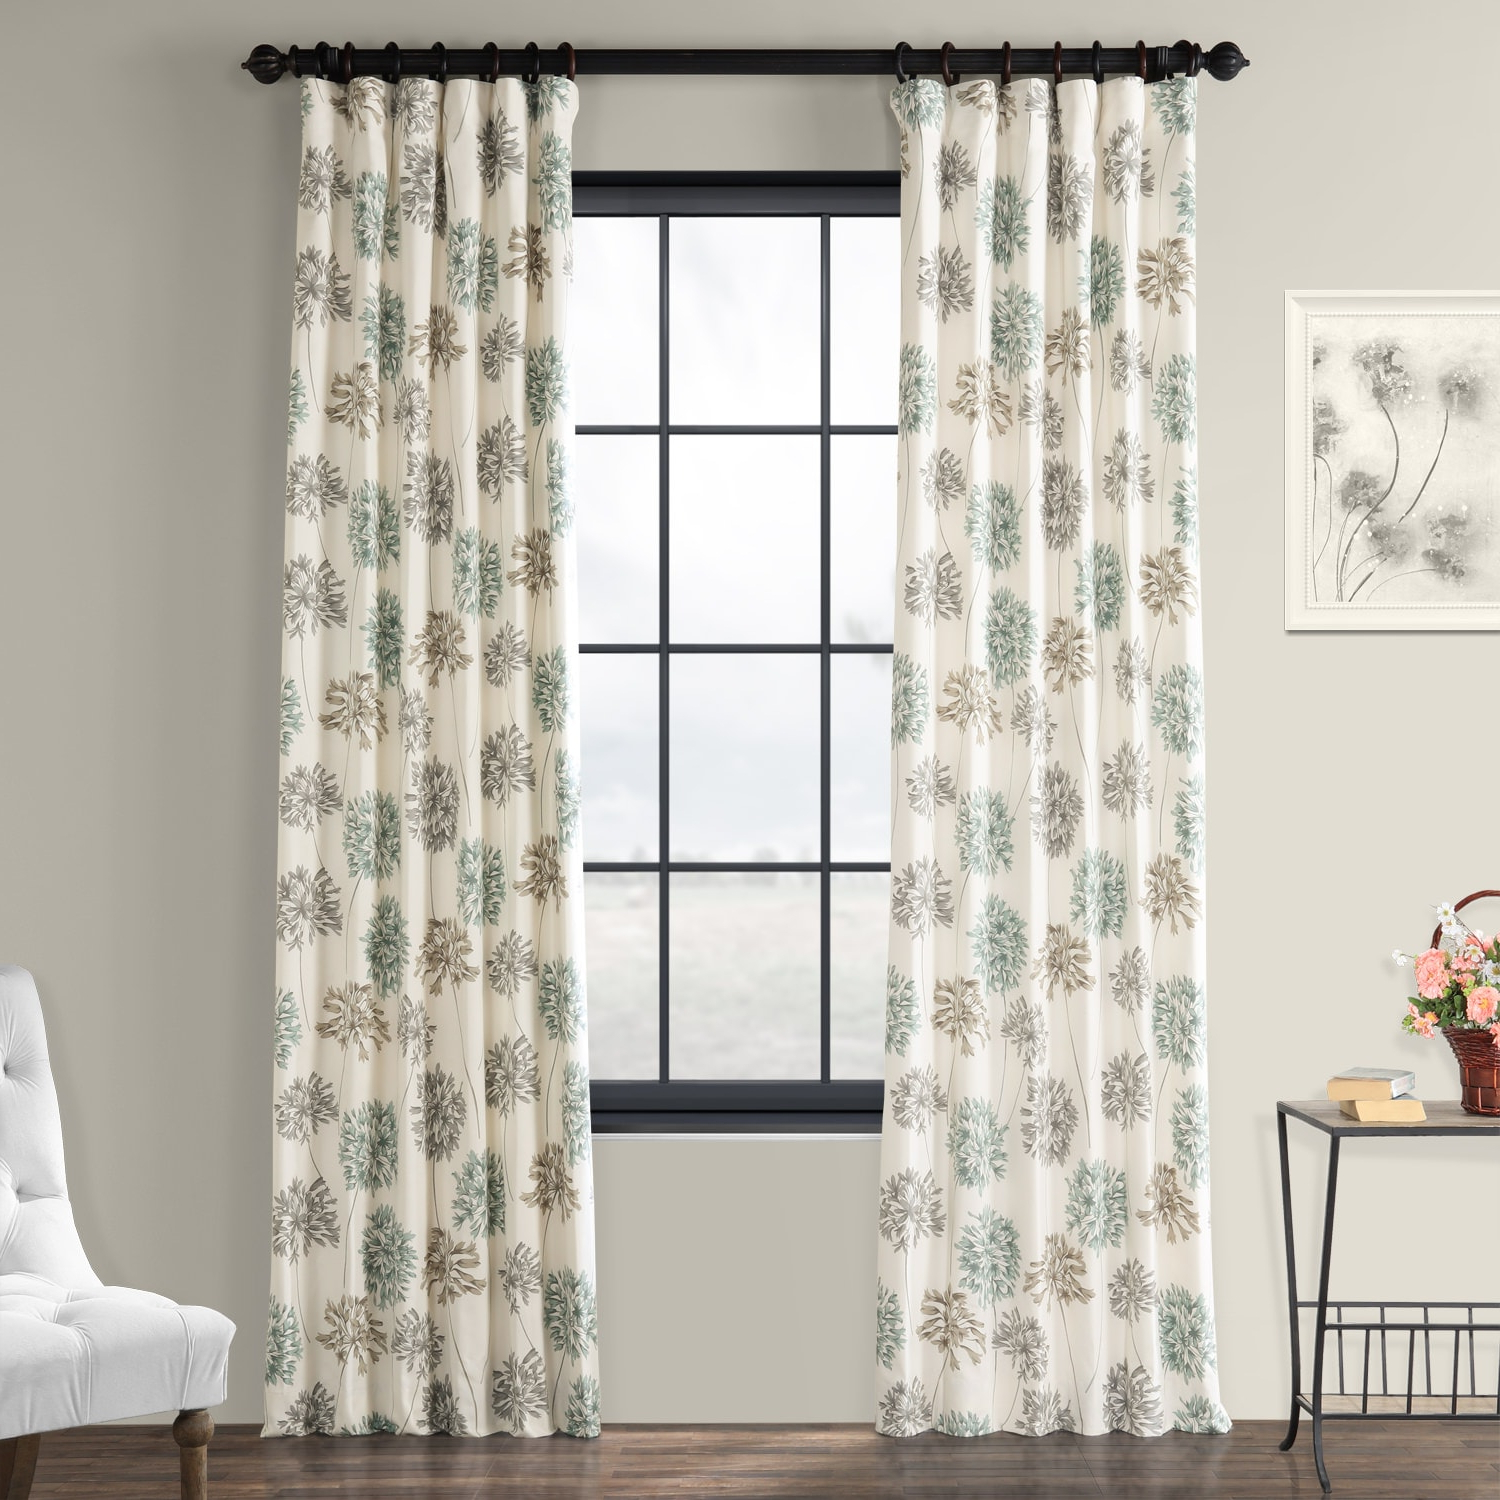 Mecca Printed Cotton Single Curtain Panels Throughout Fashionable Allium Blue Gray Printed Cotton Curtain (View 12 of 21)